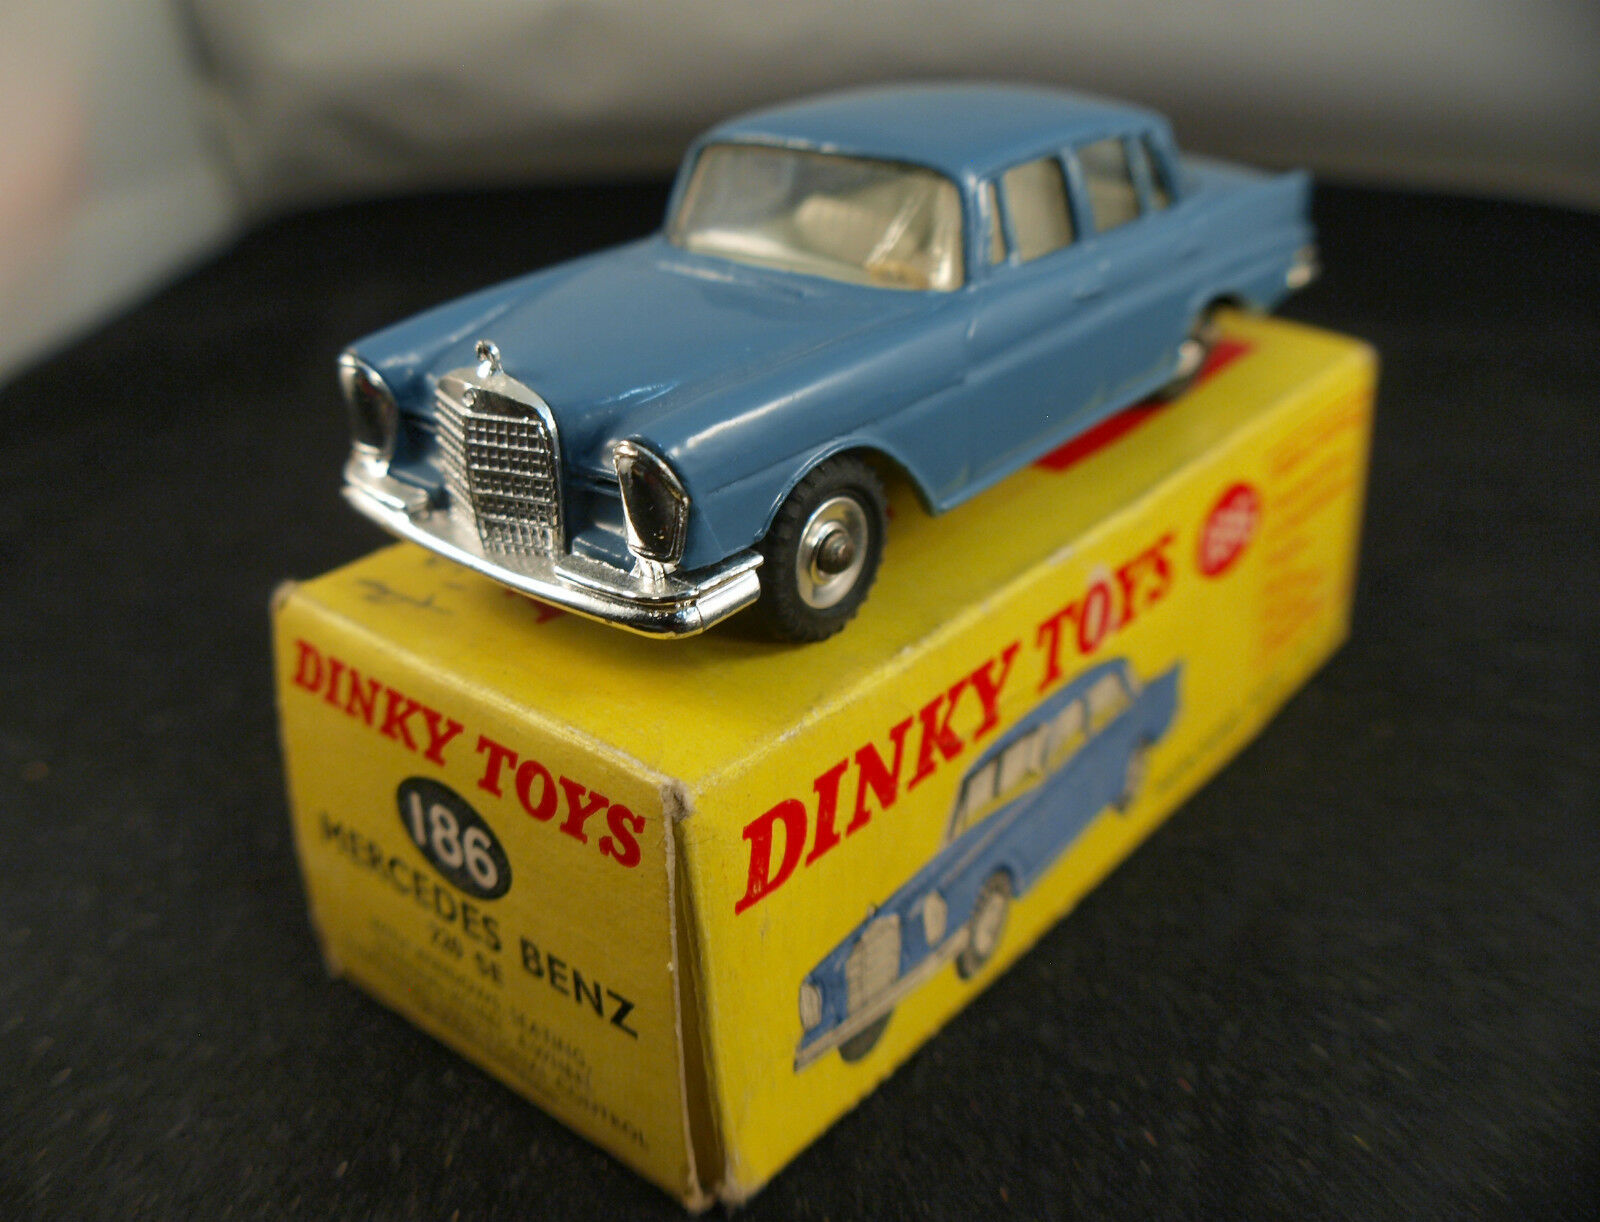 Dinky toys gb mercedes benz 220 se never played in box